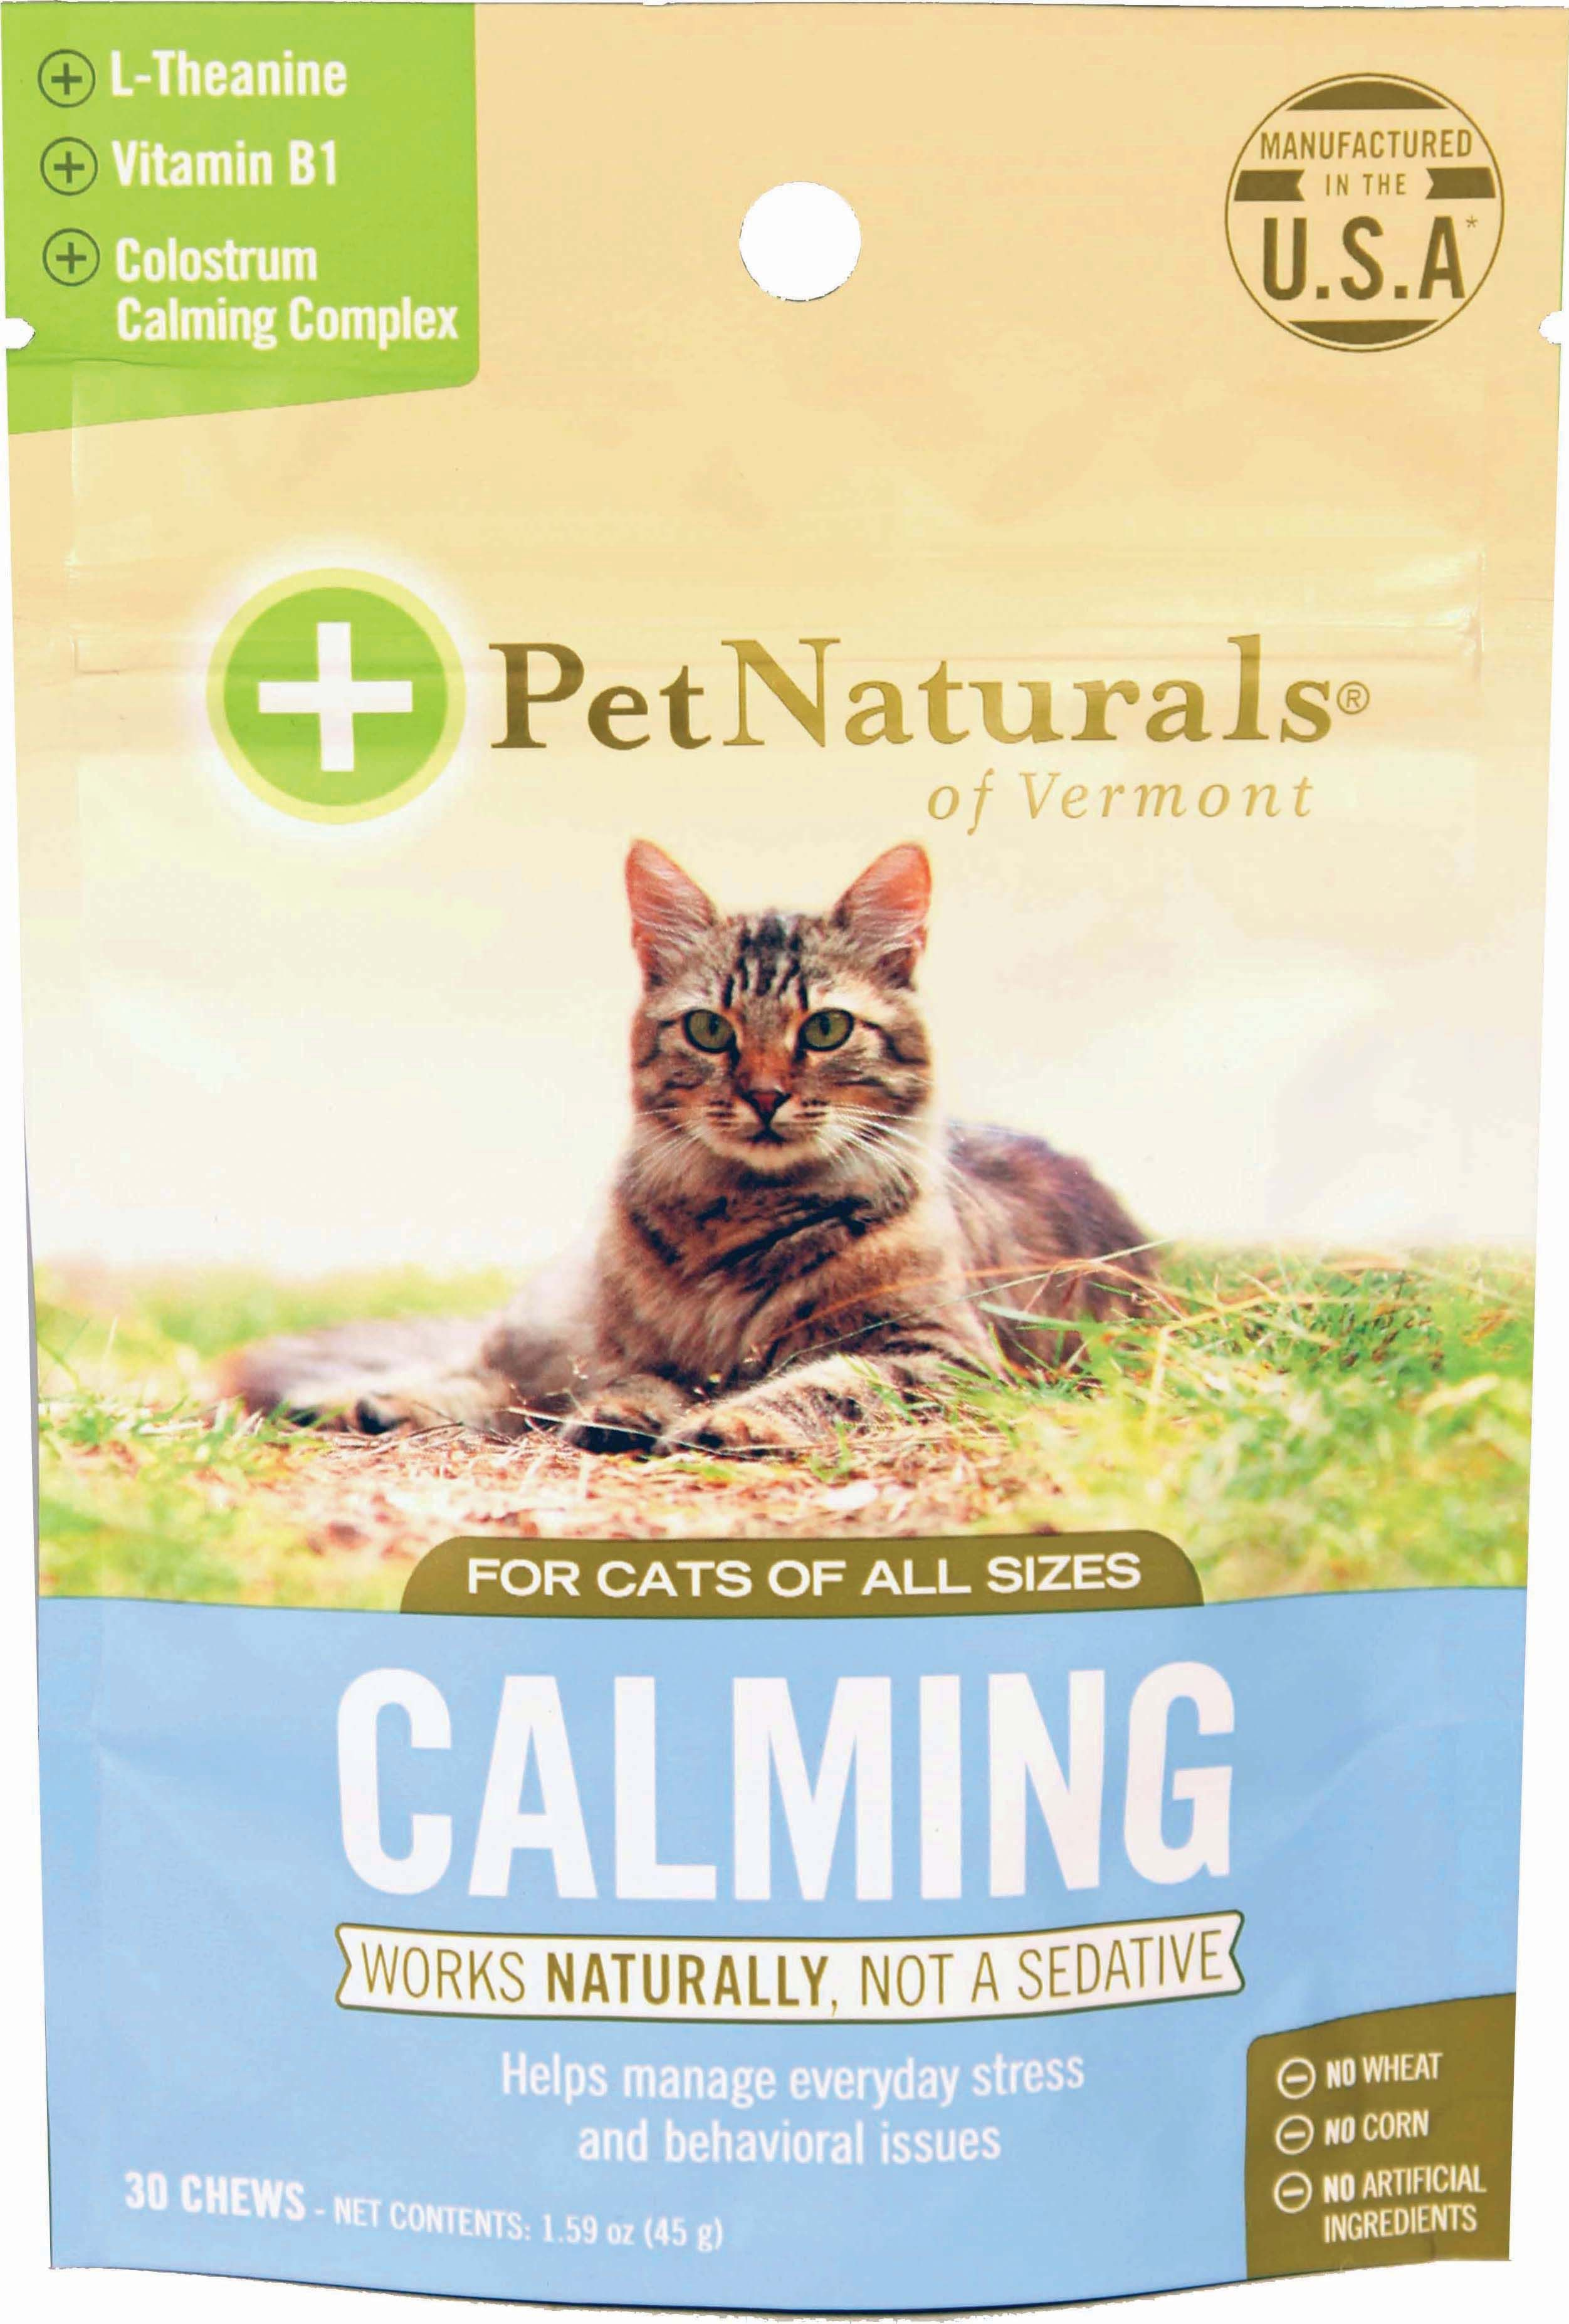 Cats calming chew for cats by pet naturals of vermont 30